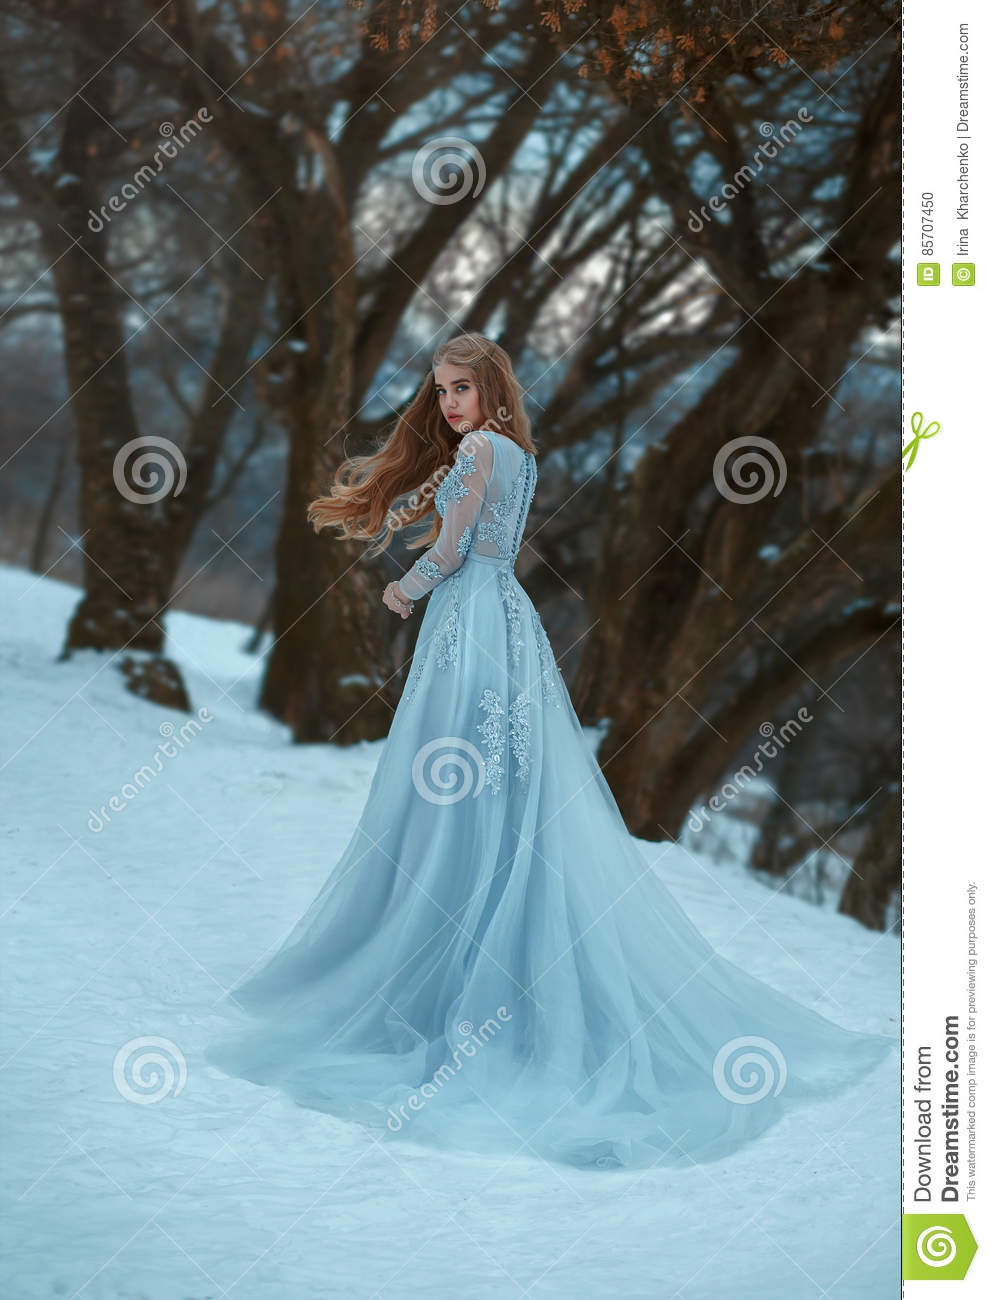 Lady In A Luxury Lush Blue Dress Stock Photo - Image of background ...